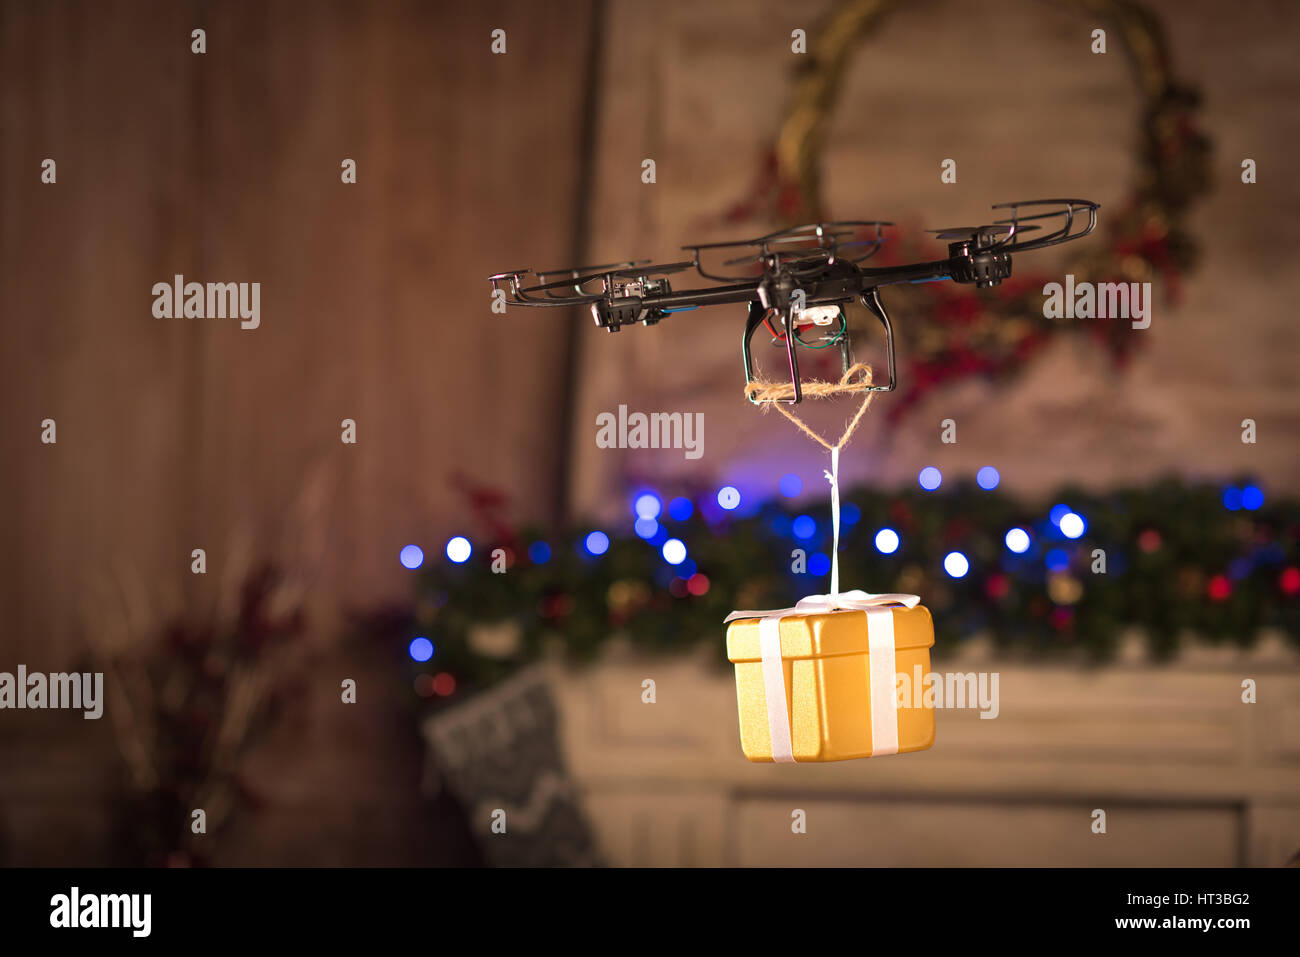 Hexacopter drone flying with gift box   - Stock Image